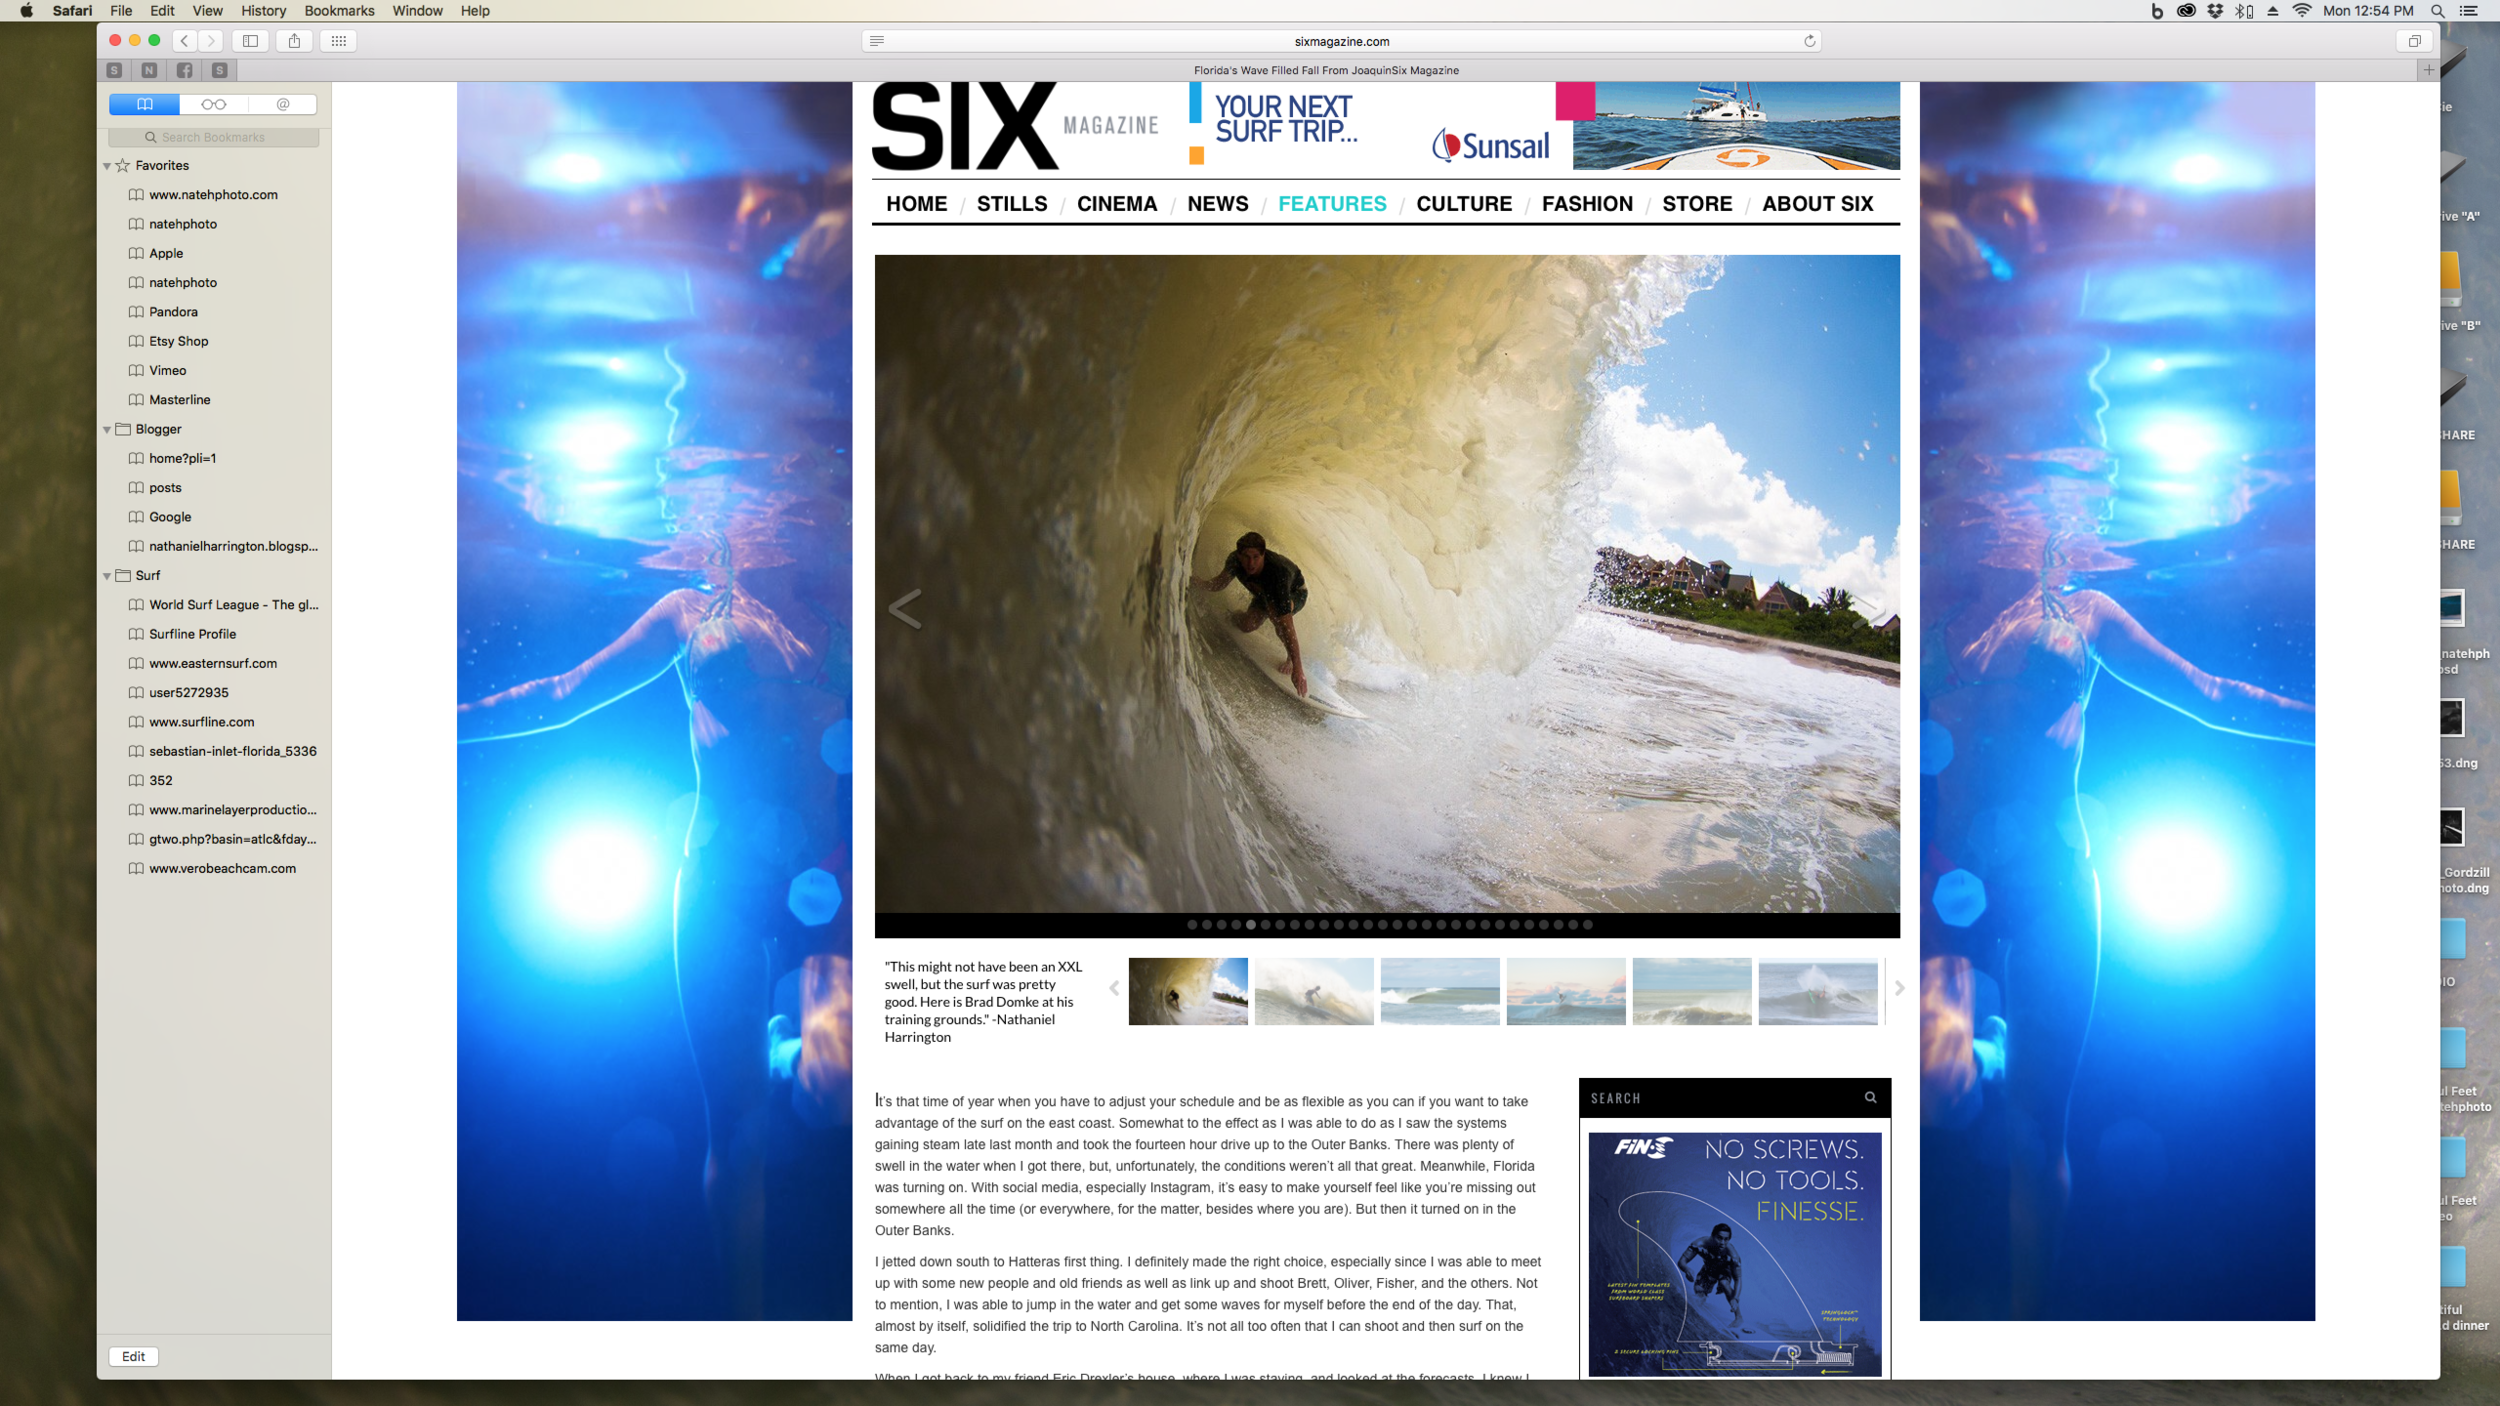 Brad Domke featured on SixMagazine.com